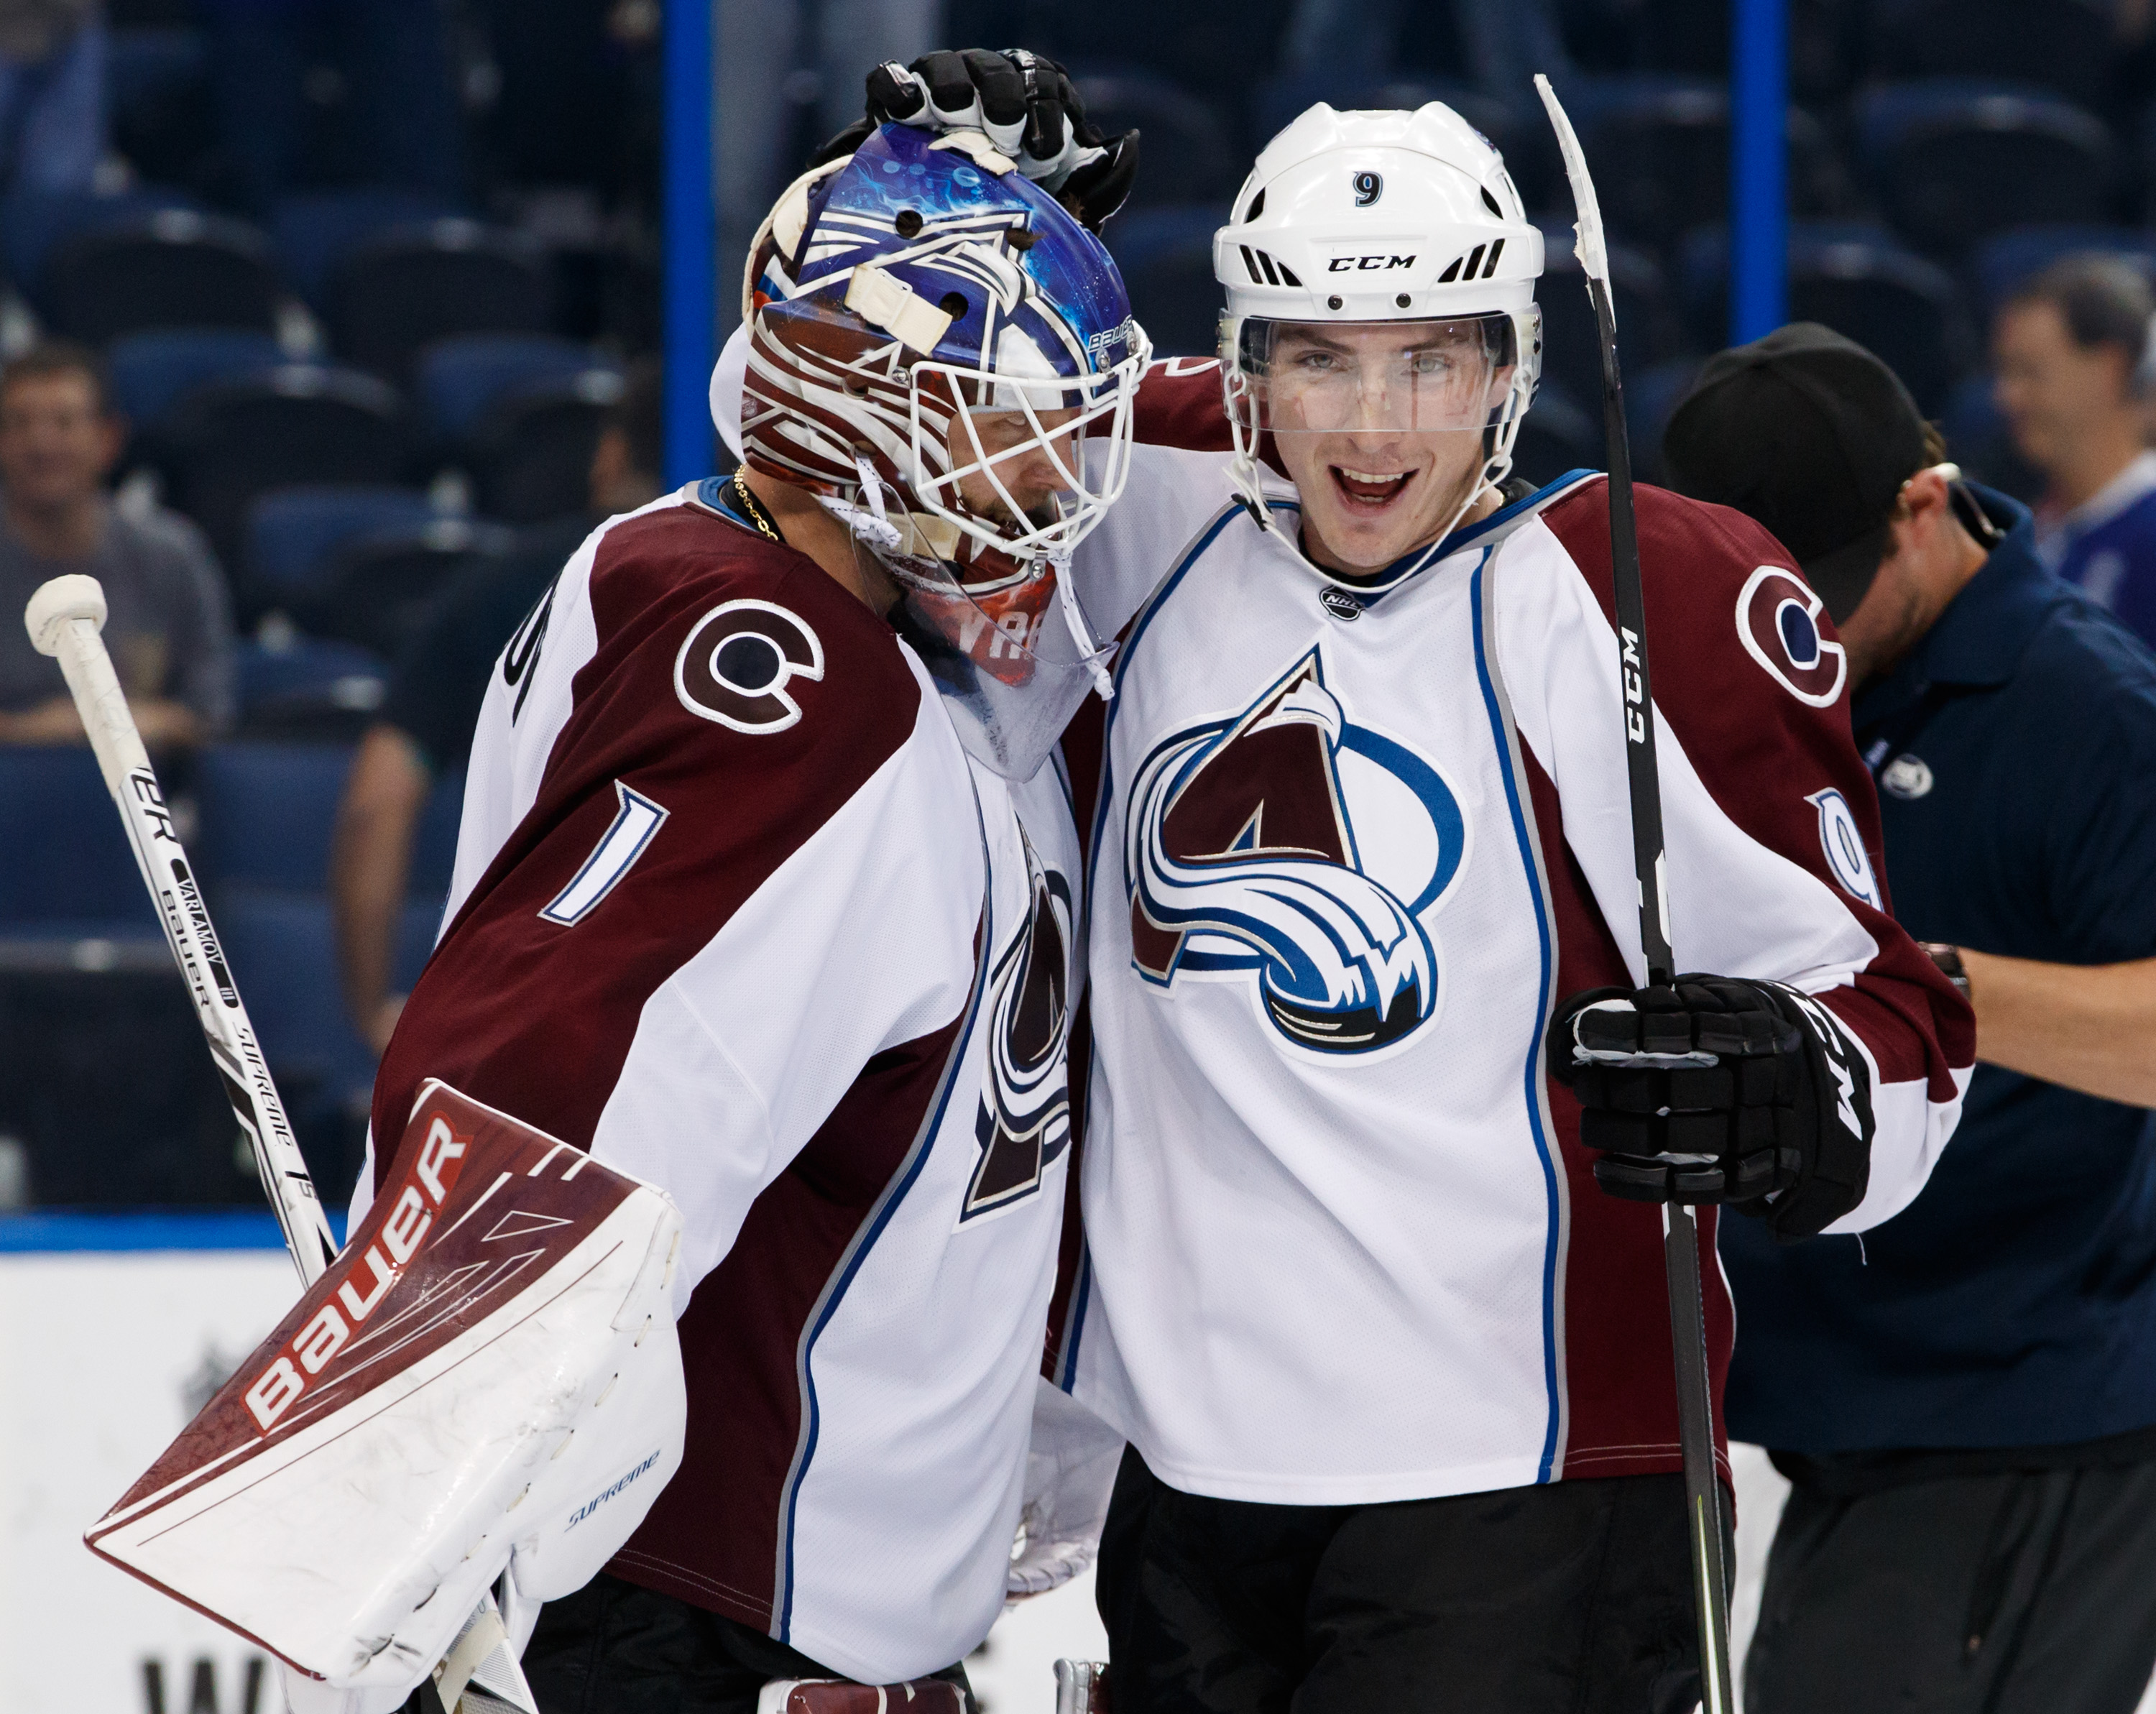 Goalie Semyon Varlamov #1 of the Colorado Avalanche celebrates a shutout win with teammate Matt Duchene #9 after the game against the Tampa Bay Lightning at Amalie Arena on October 20, 2016 in Tampa, Florida.  (Photo by Scott Audette/ NHLI via Getty Images)